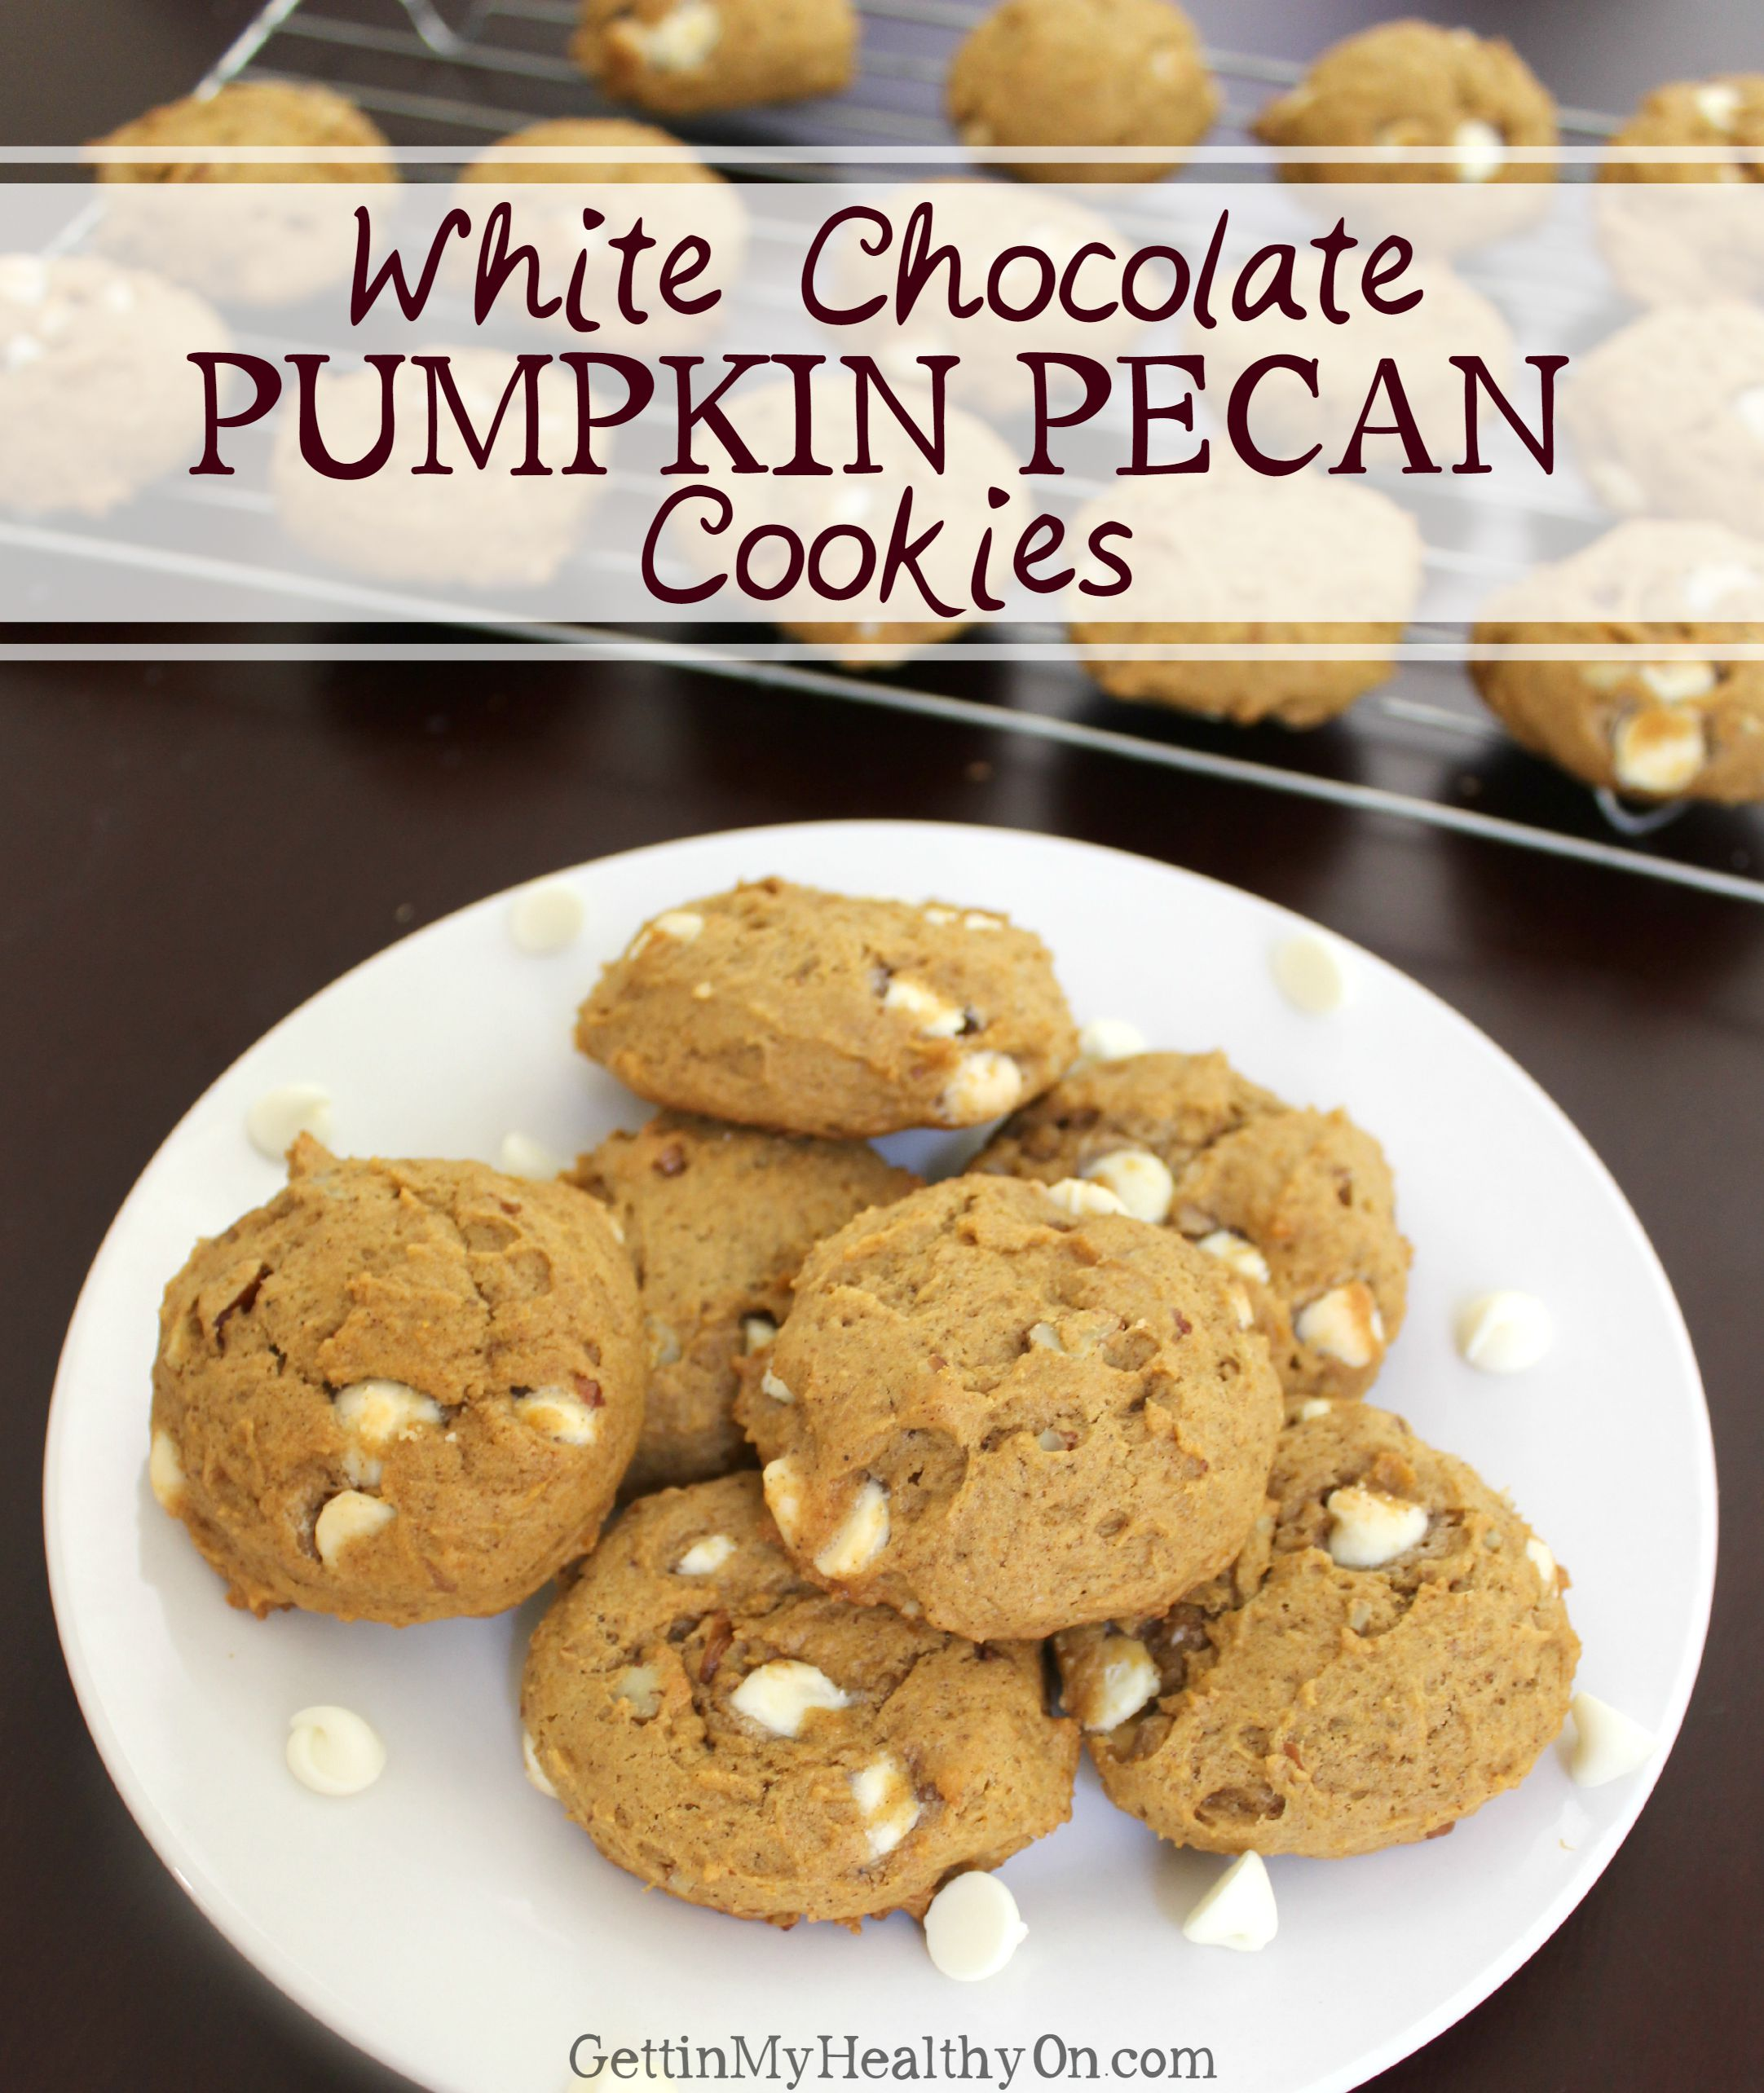 White Chocolate Pumpkin Pecan Cookies are a delicious fall treat with ...